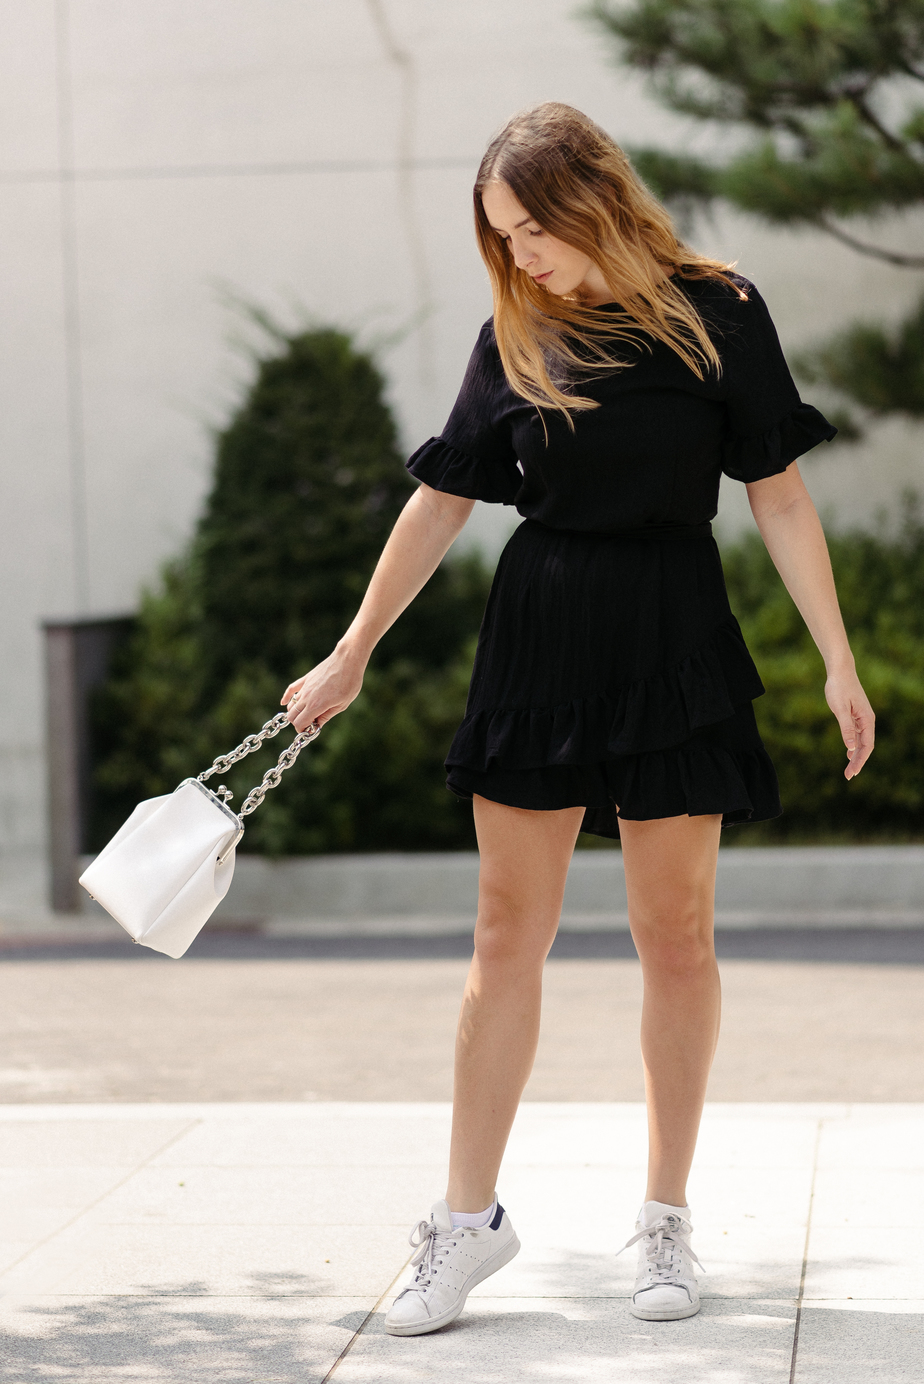 Atmos & Here Dress, Stylenanda Bag | StolenInspiration.com NZ Fashion & Travel Blog